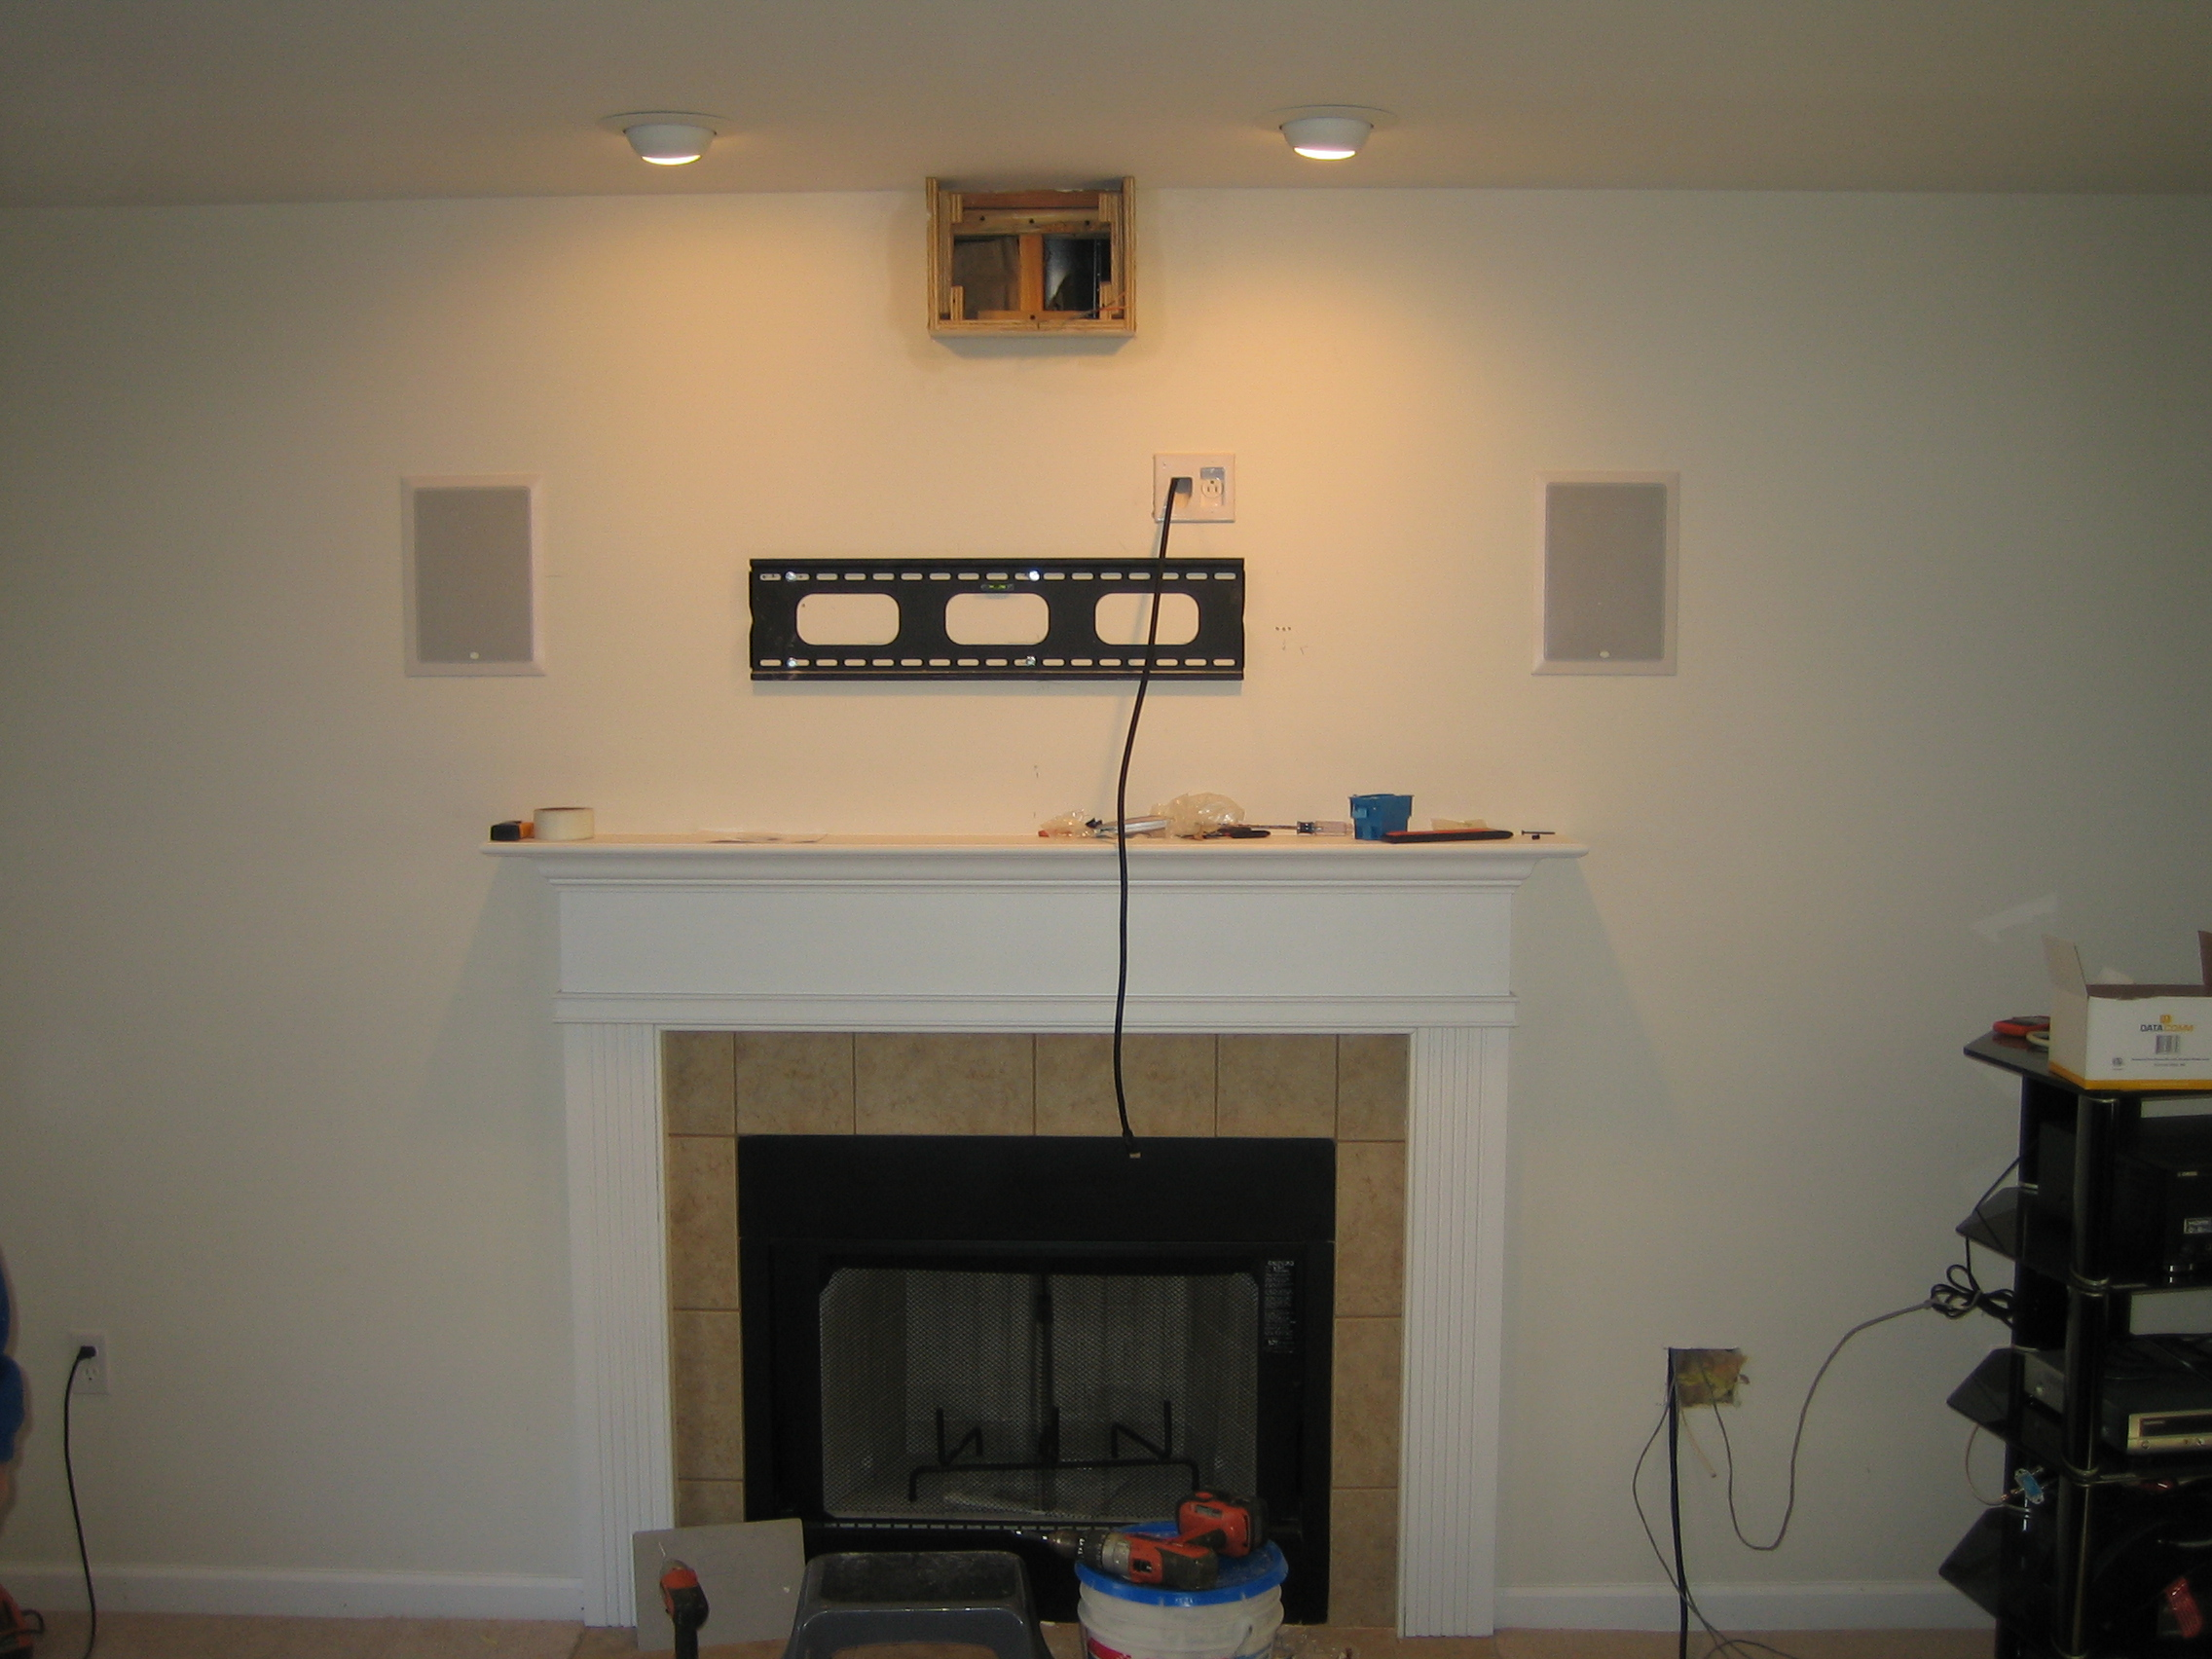 5 1 Home Theater Subwoofer Tv Over Fireplace Wires Hidden